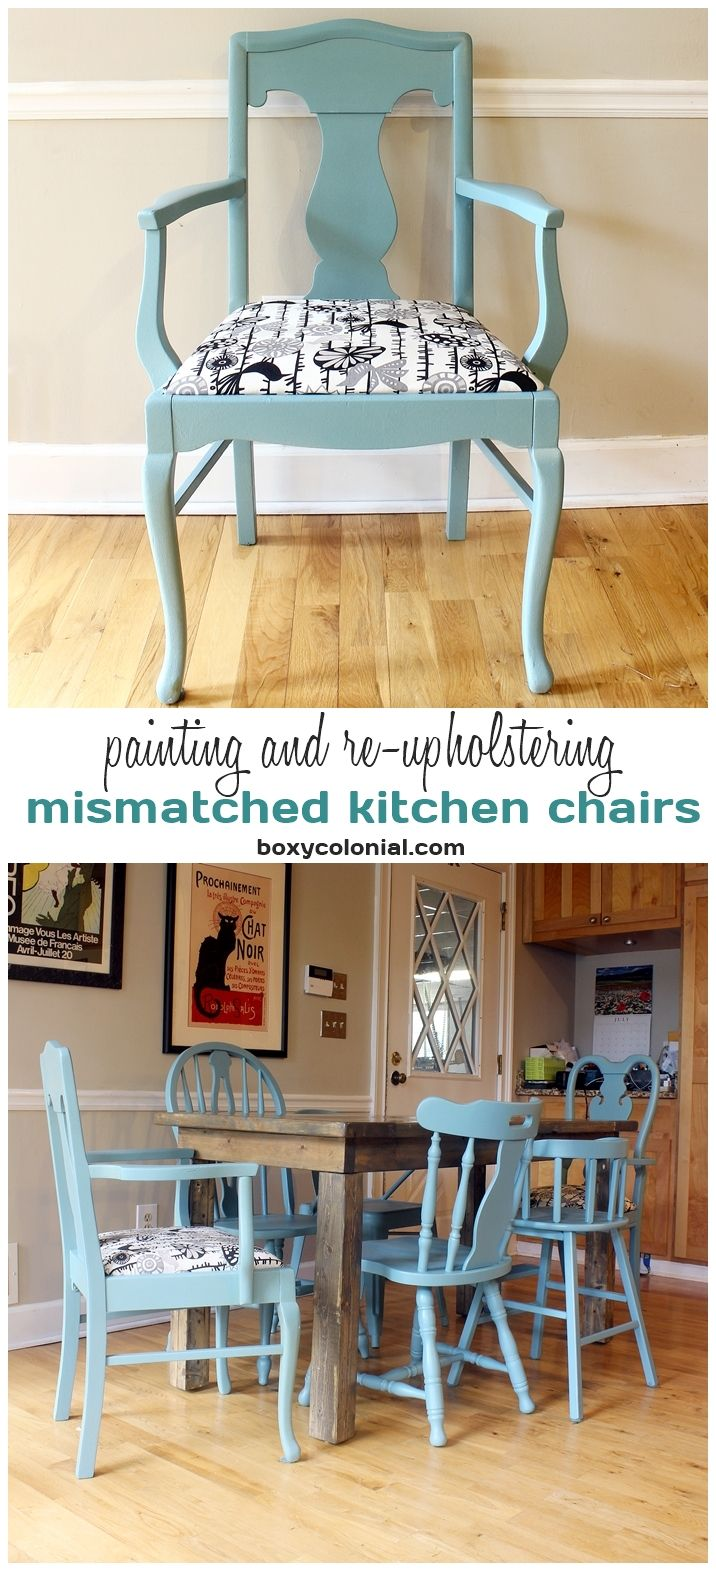 Painting and Re-upholstering Mismatched Kitchen Chairs